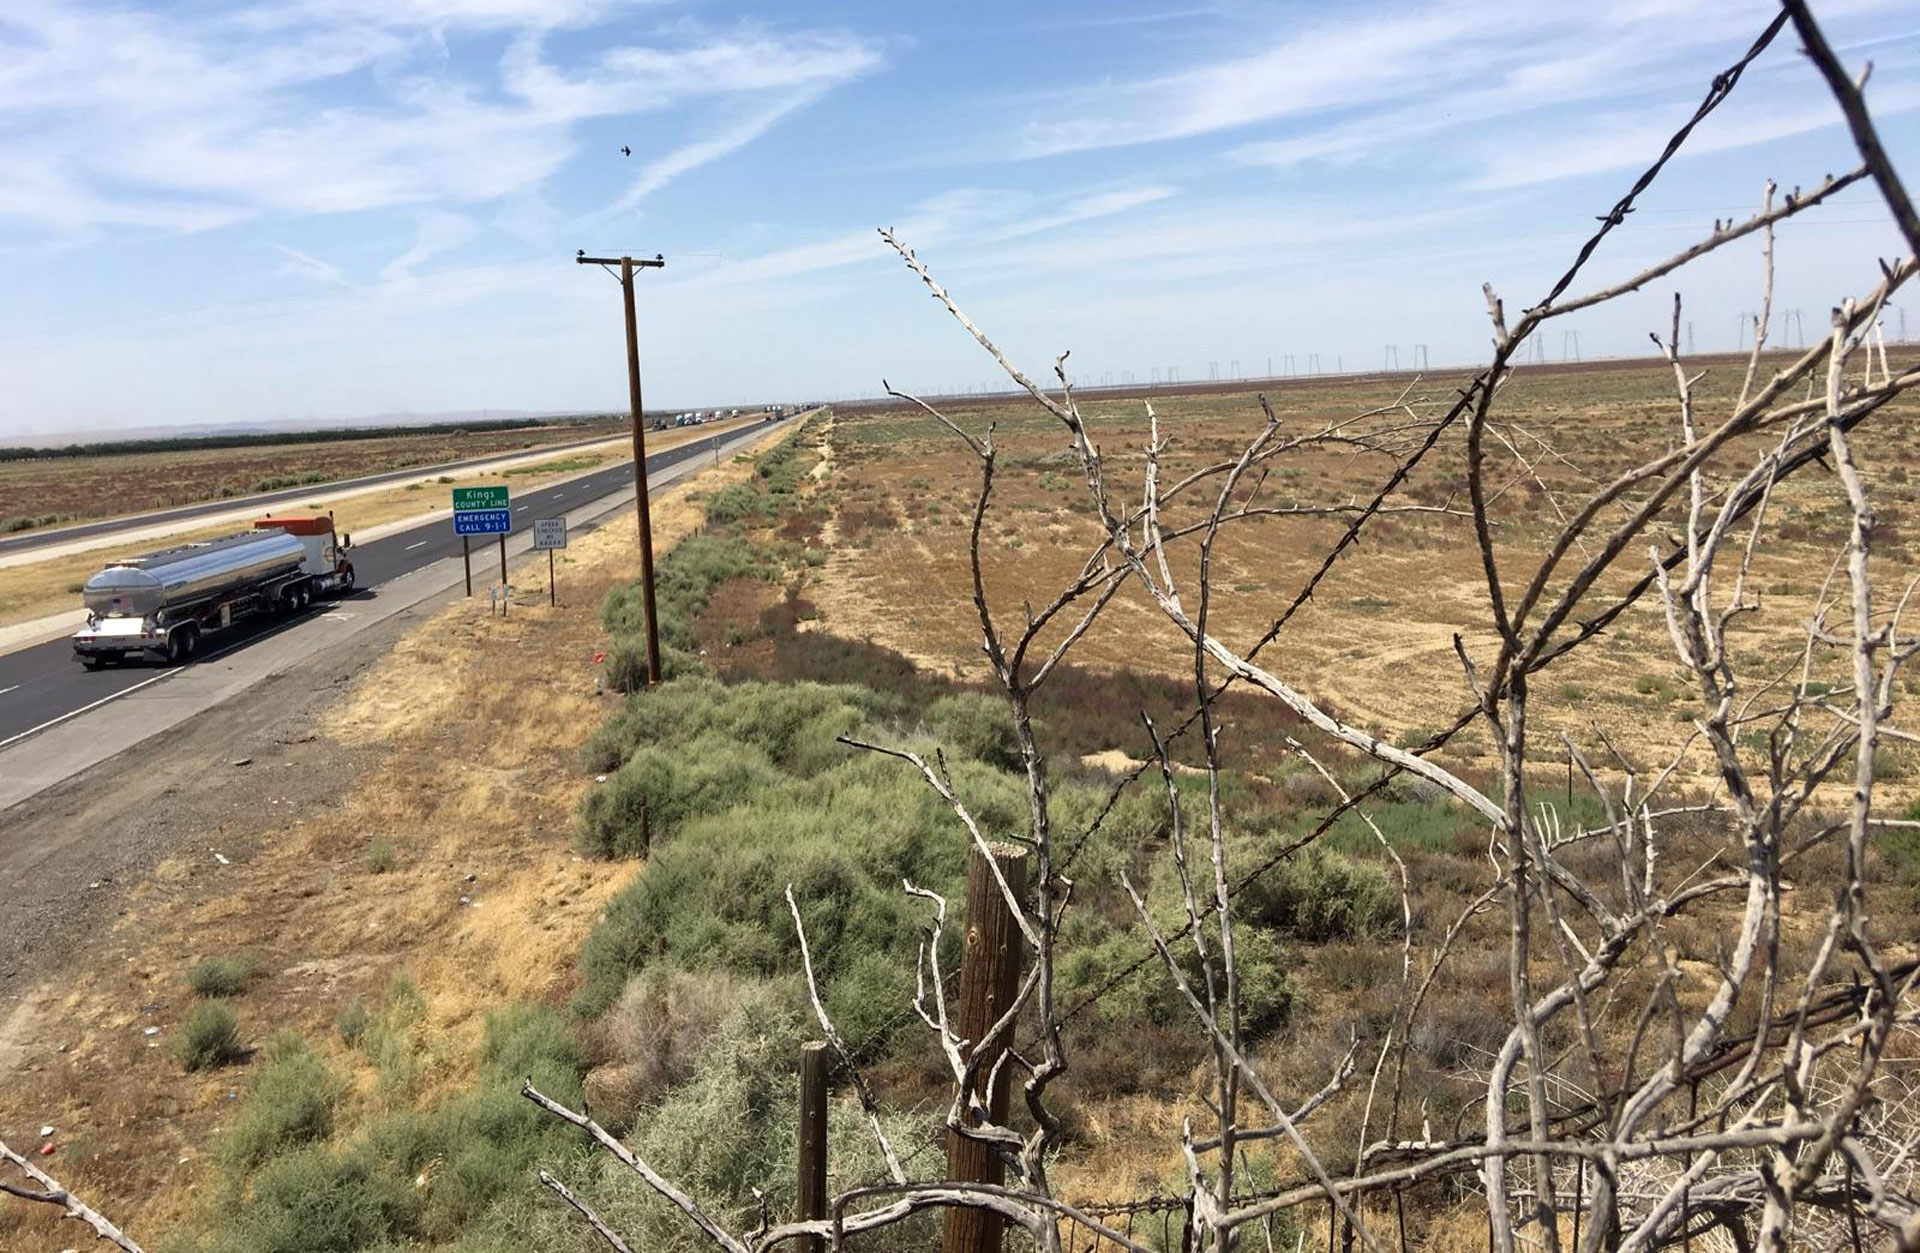 The proposed site for the Quay Valley development is right on the edge of Kern and Kings counties near Interstate 5.